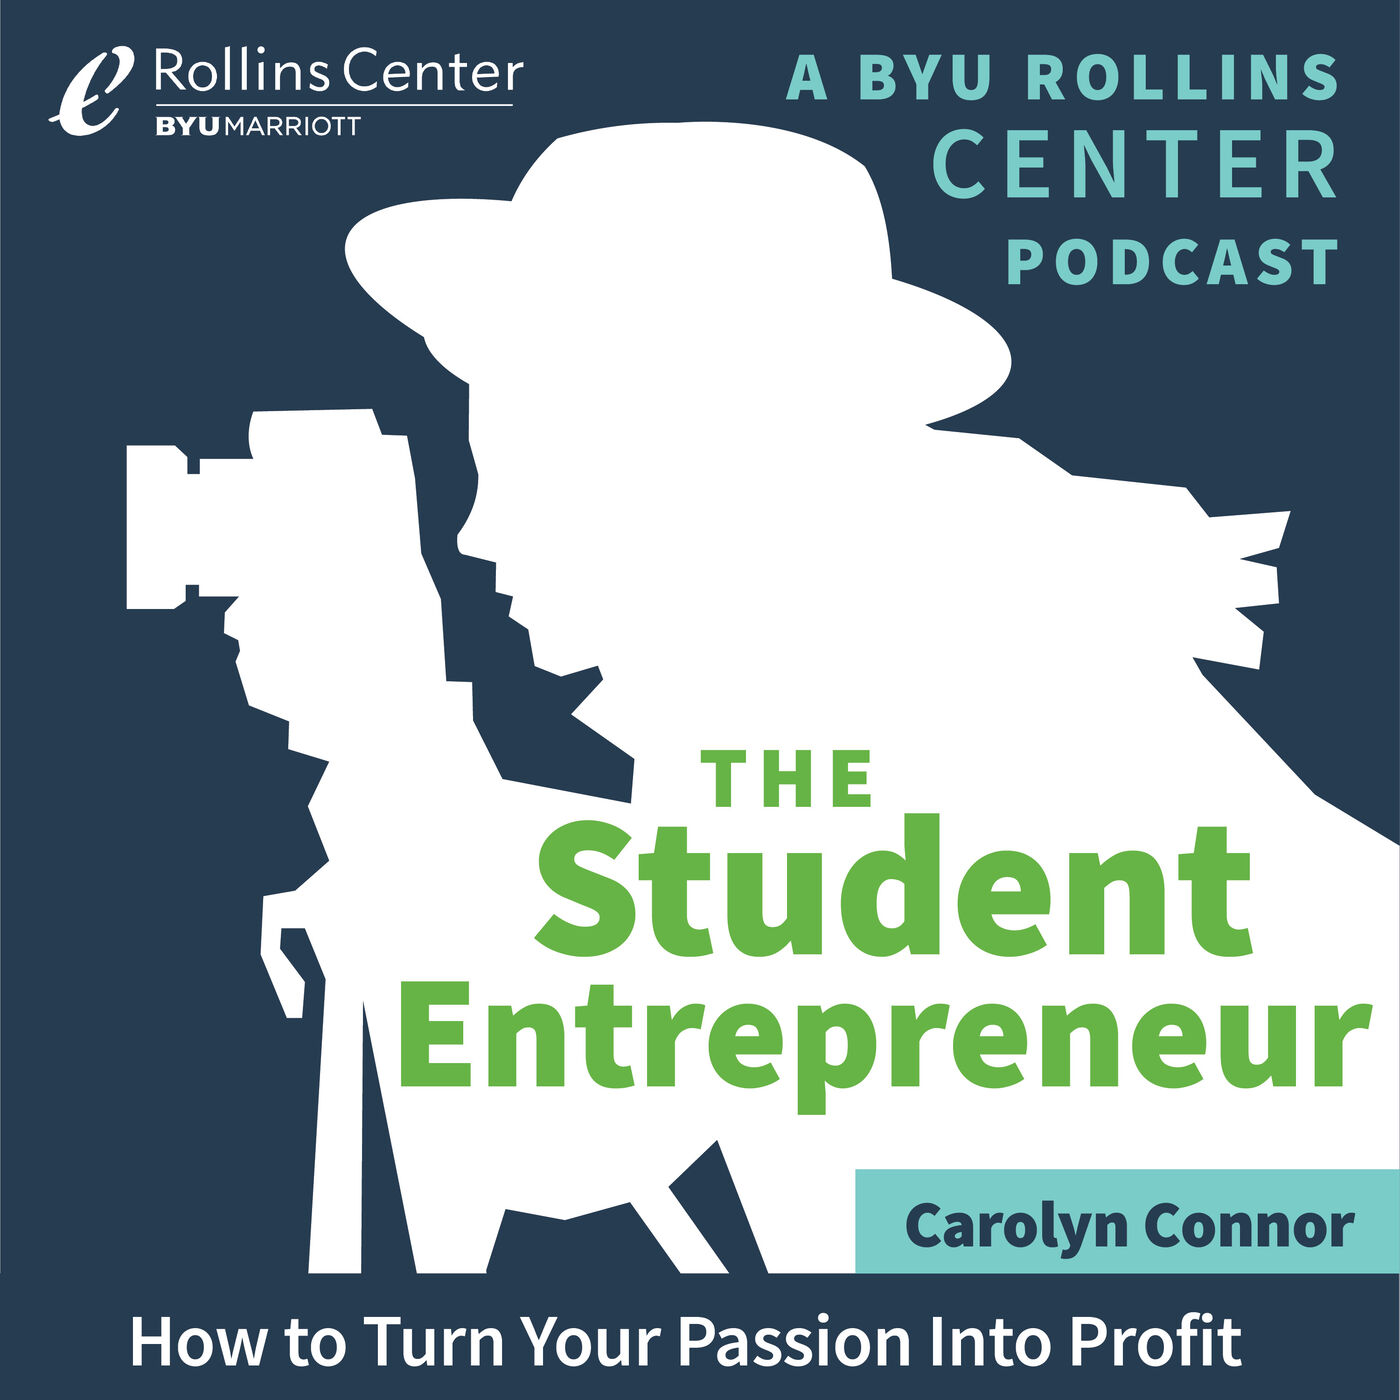 Carolyn Connor - How to Turn Your Passion Into Profit